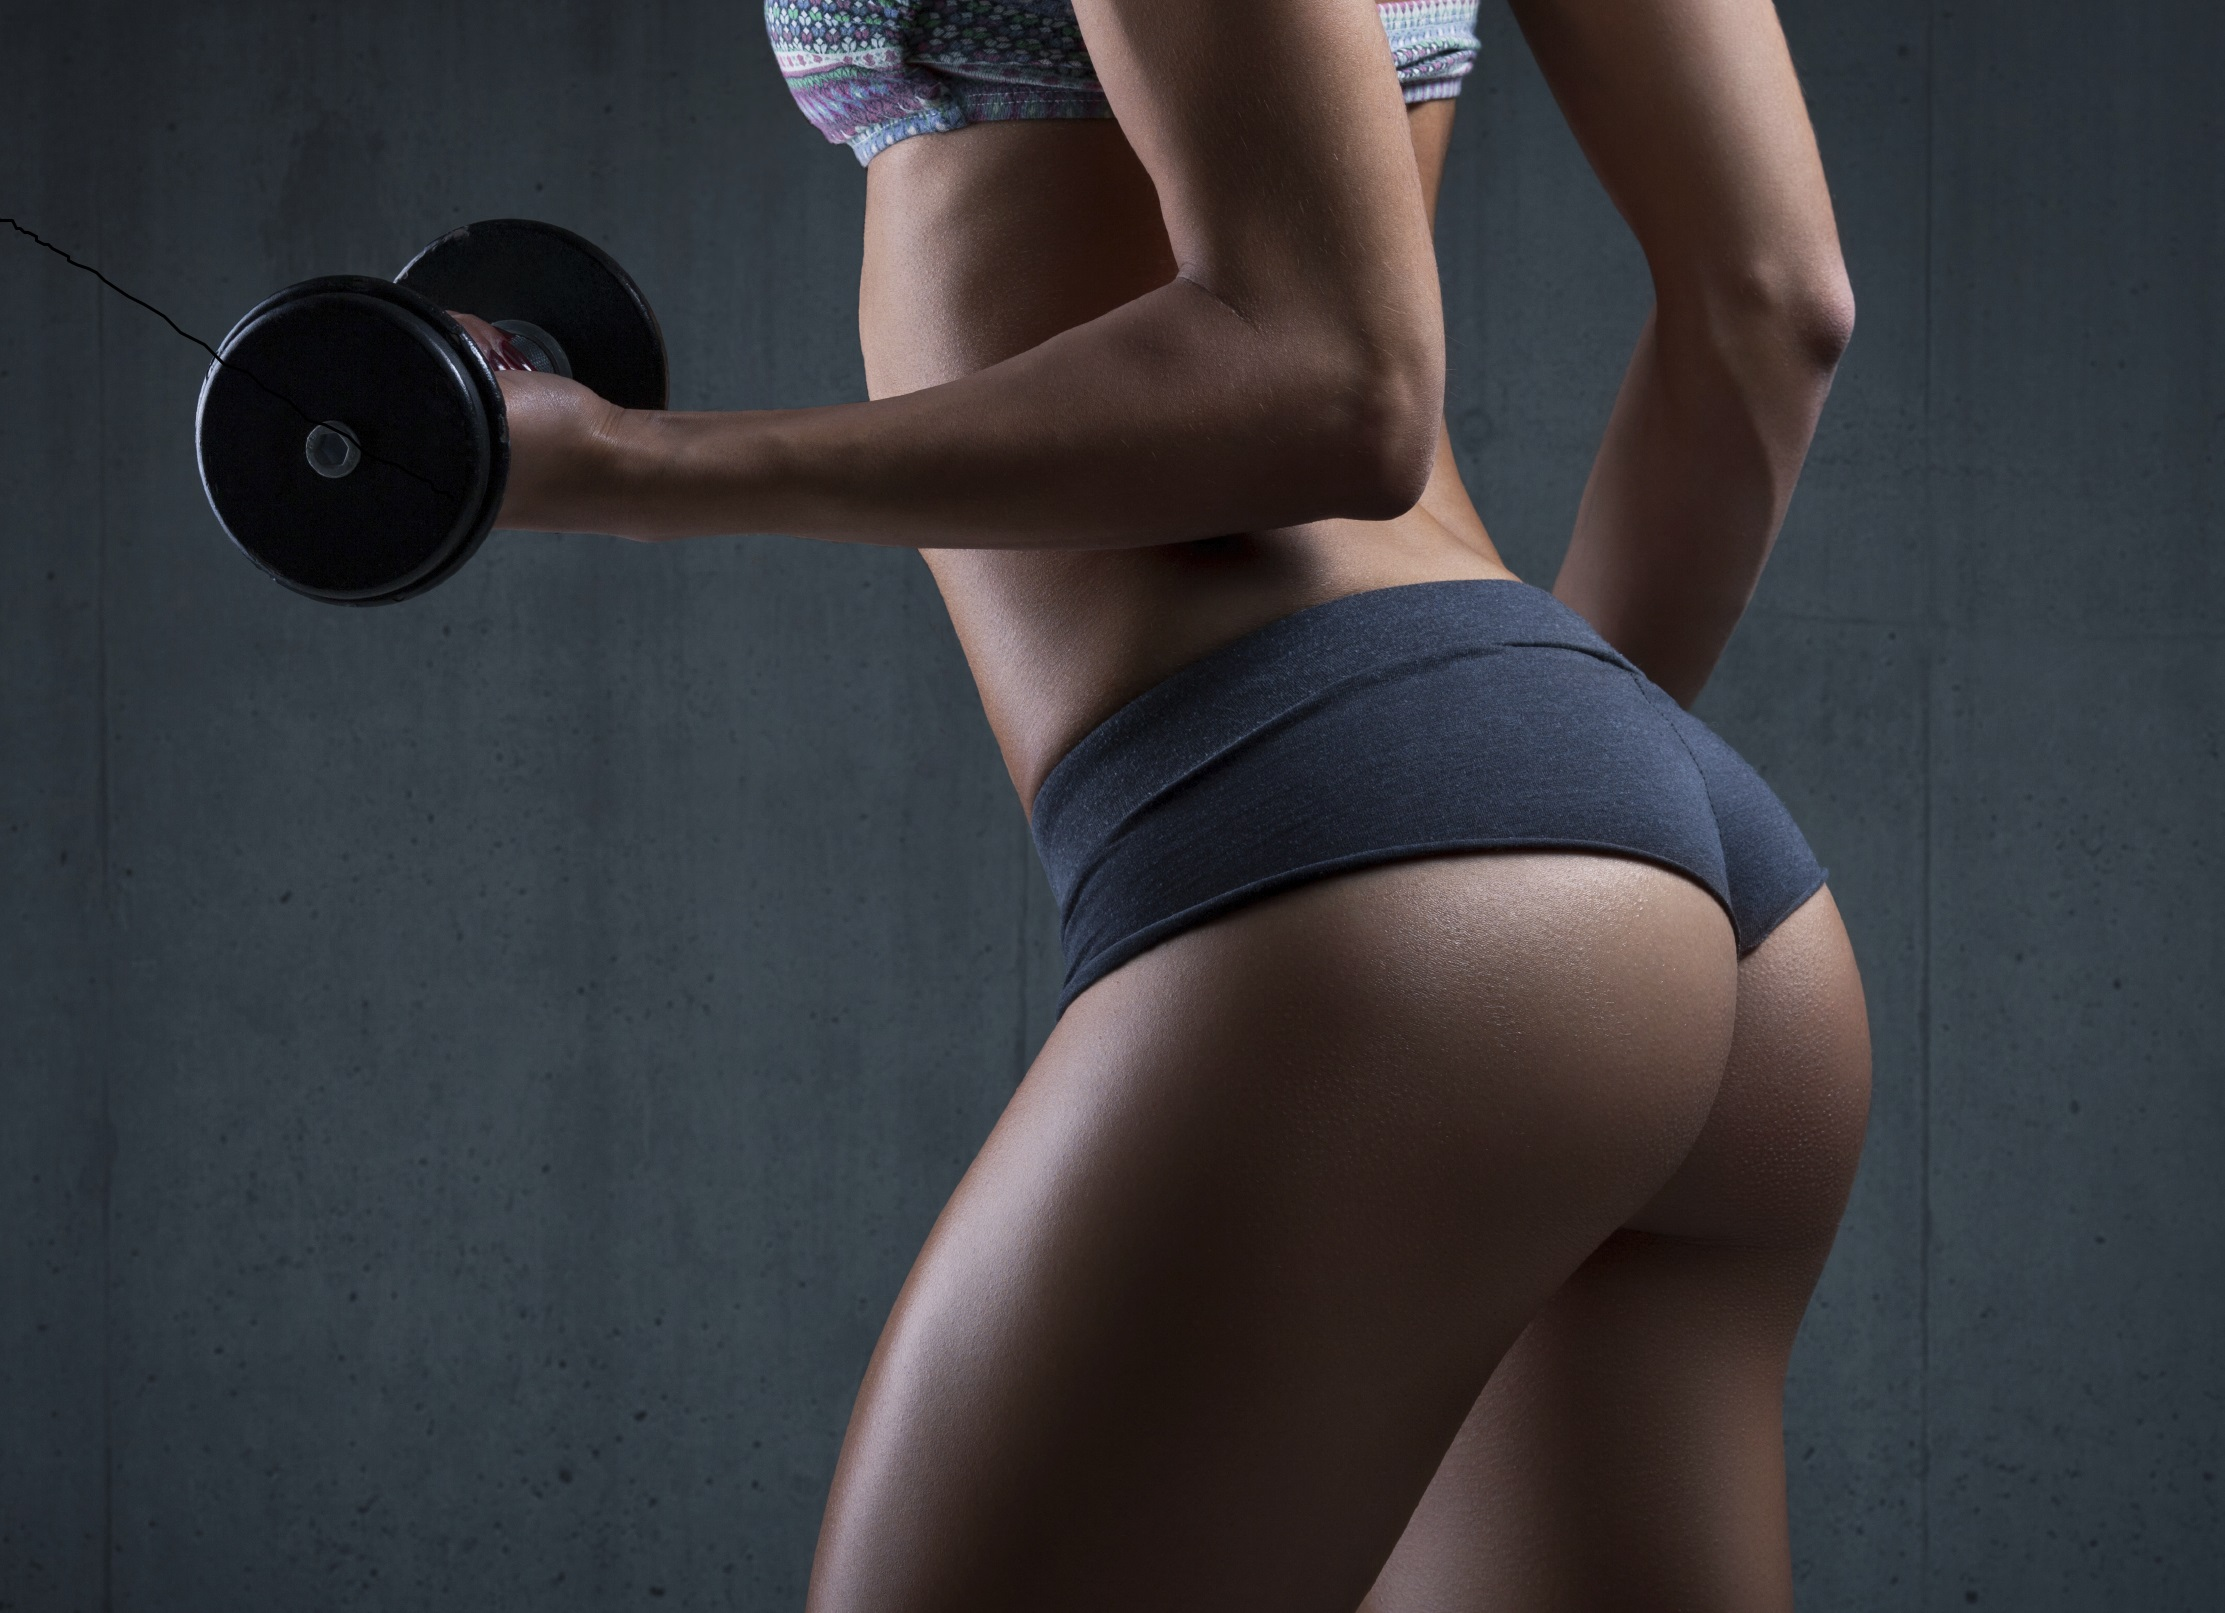 Ladies: Try this for a better bum